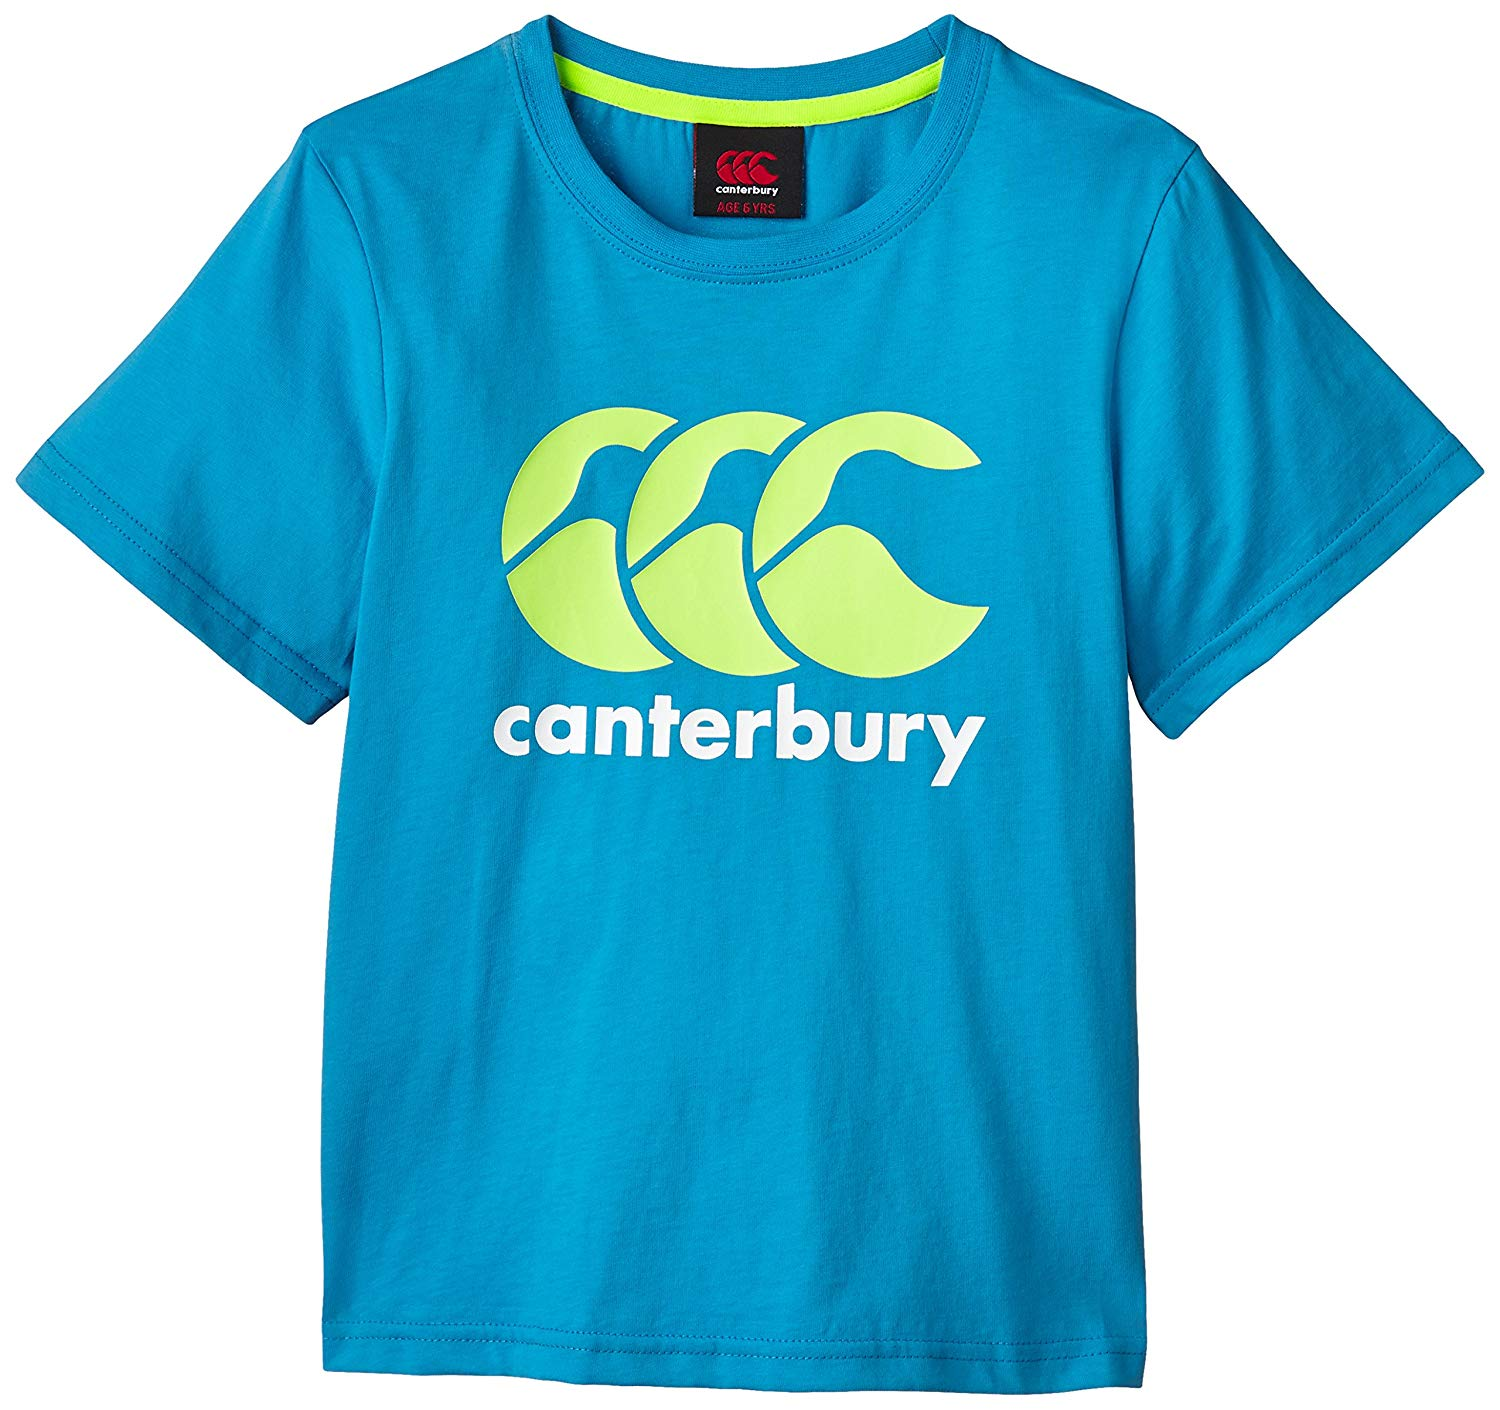 CANTERBURY PINK CCC LOGO BLUE TEE SHIRT SIZE BOYS 10 YEARS BRAND NEW WITH TAGS